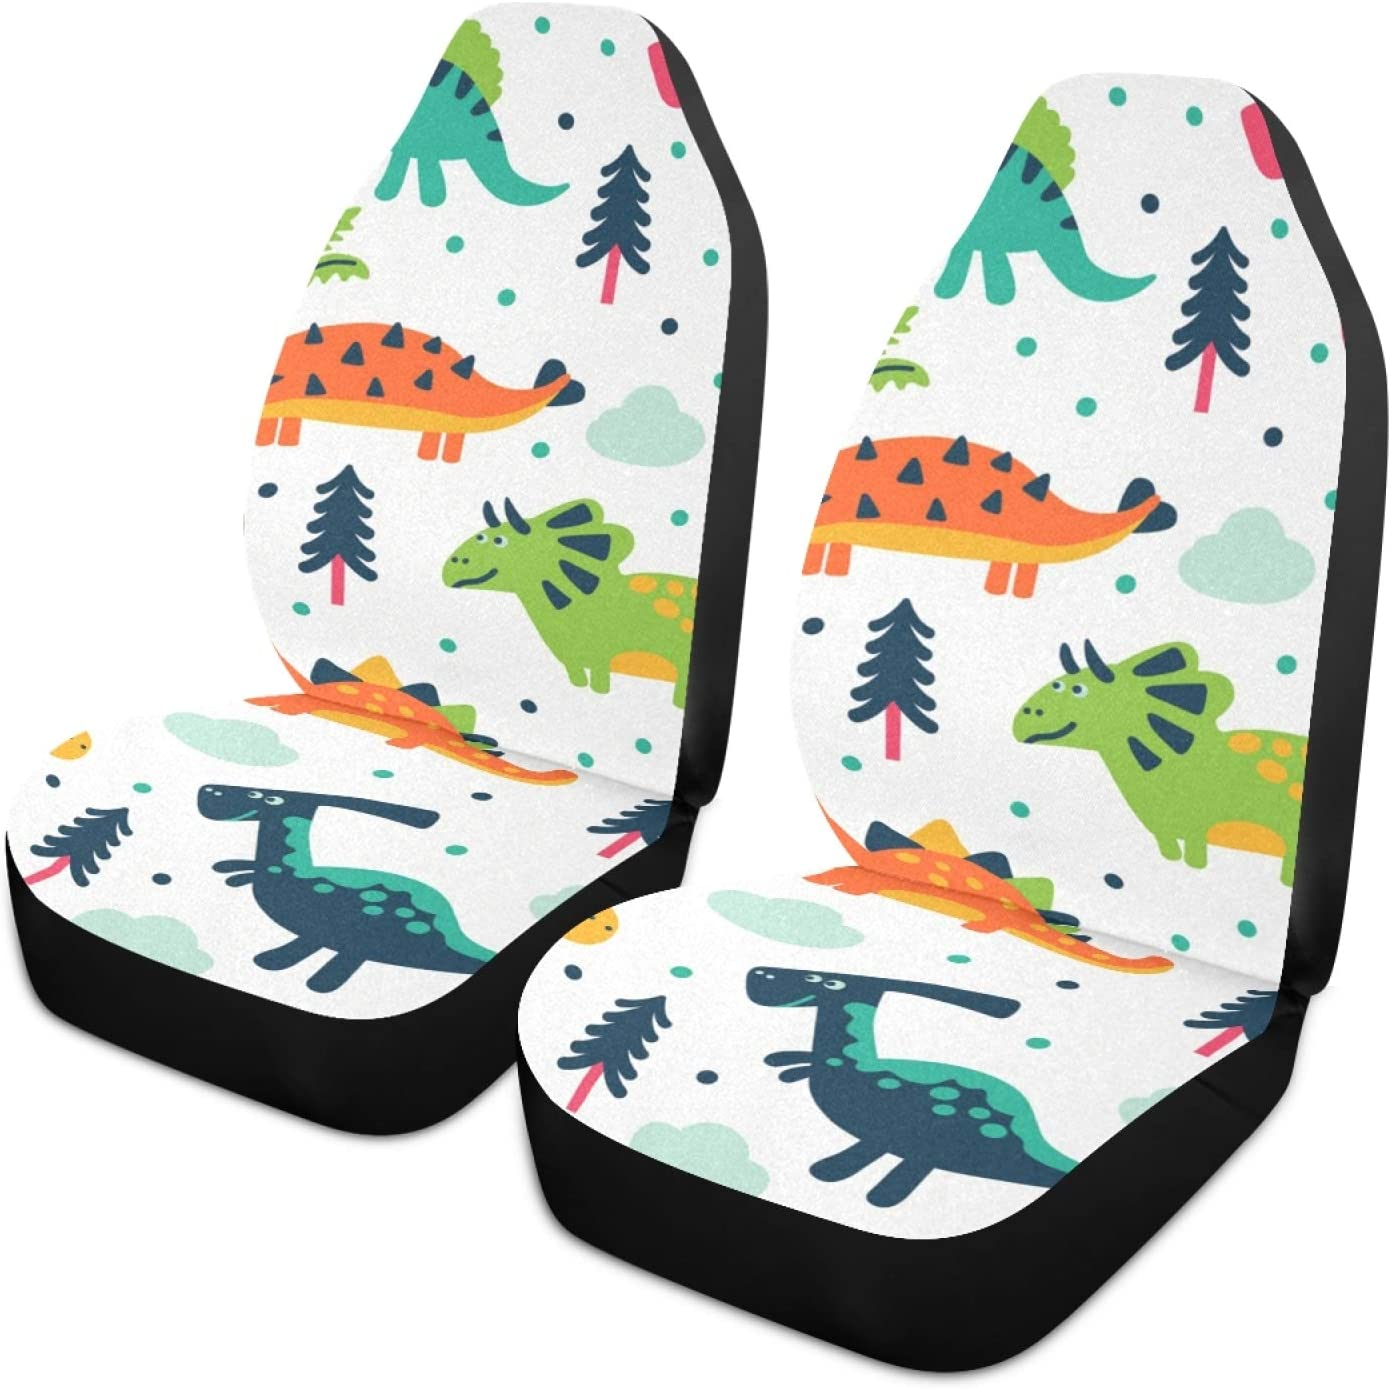 Moudou Dinosaur Car Seat Cover Breathable Front Car Seat Cover Vehicle Seat Protector Fit Most Cars, SUV, Truck and Van, 1pc